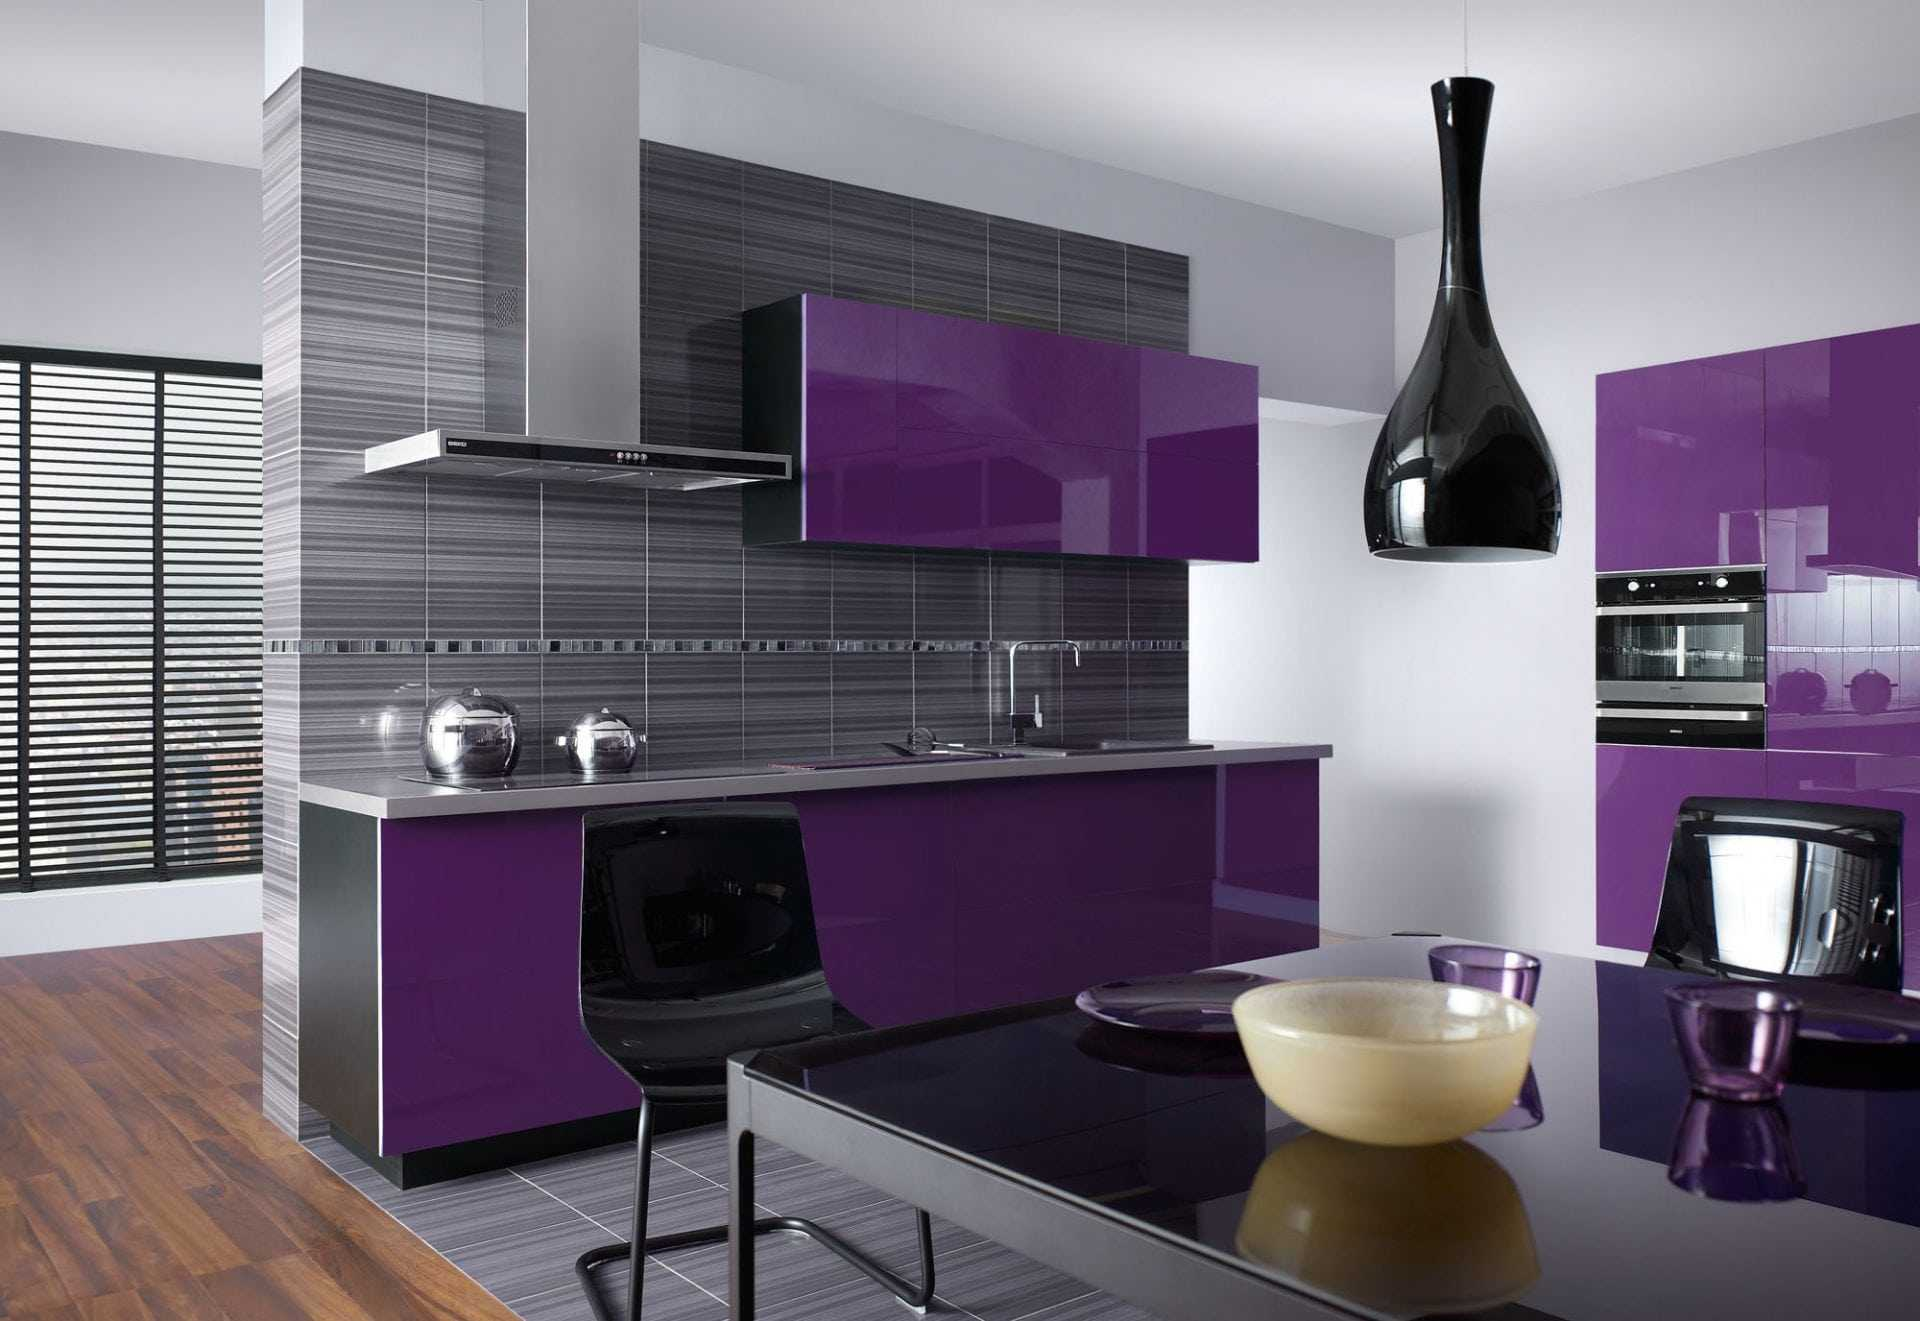 FRED Kitchen Remodeling Contractors Chicago | Kitchen Remodeling Chicago